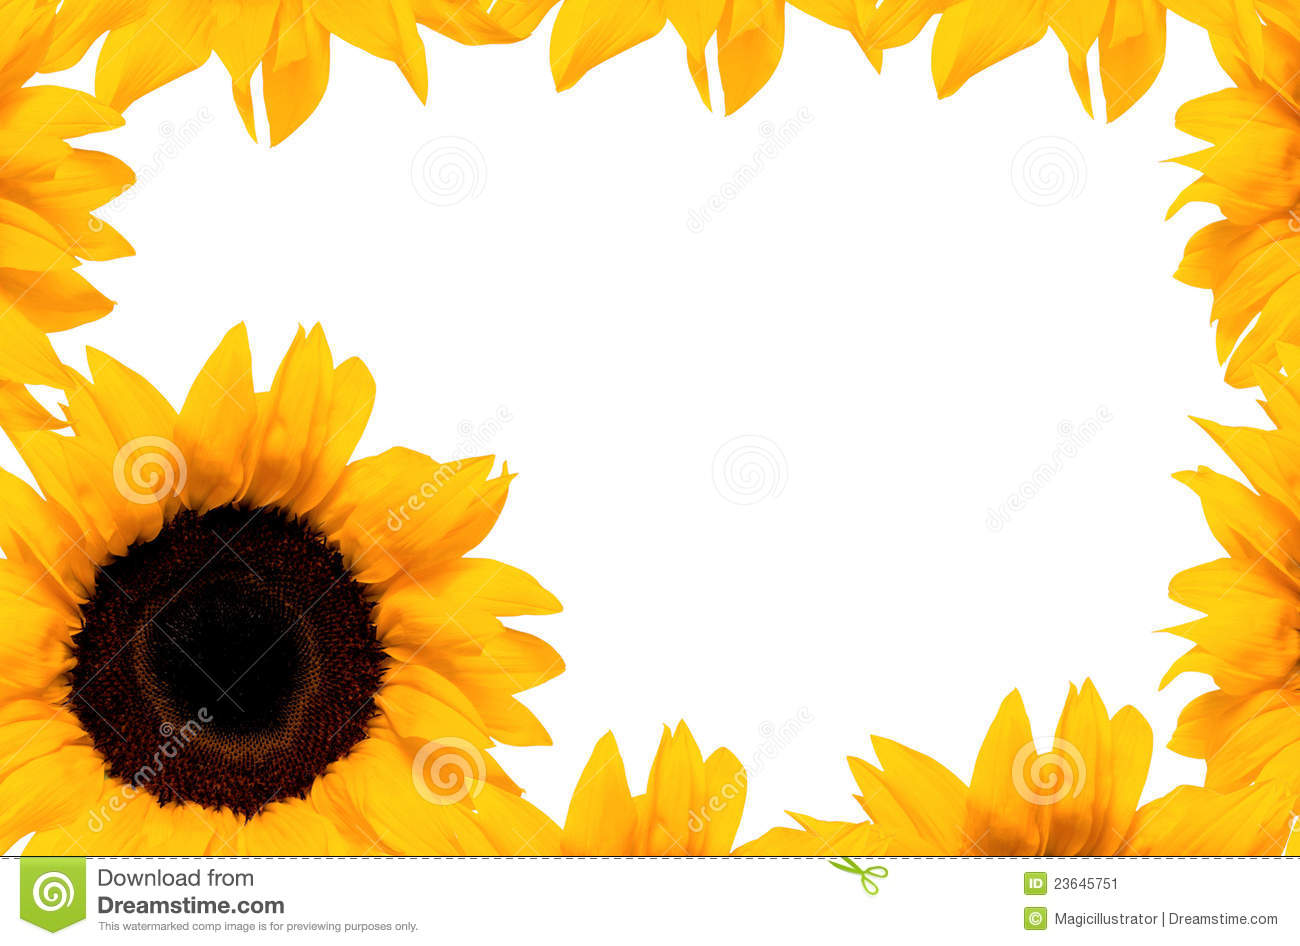 Illustration of sunflower frame isolated on white background.